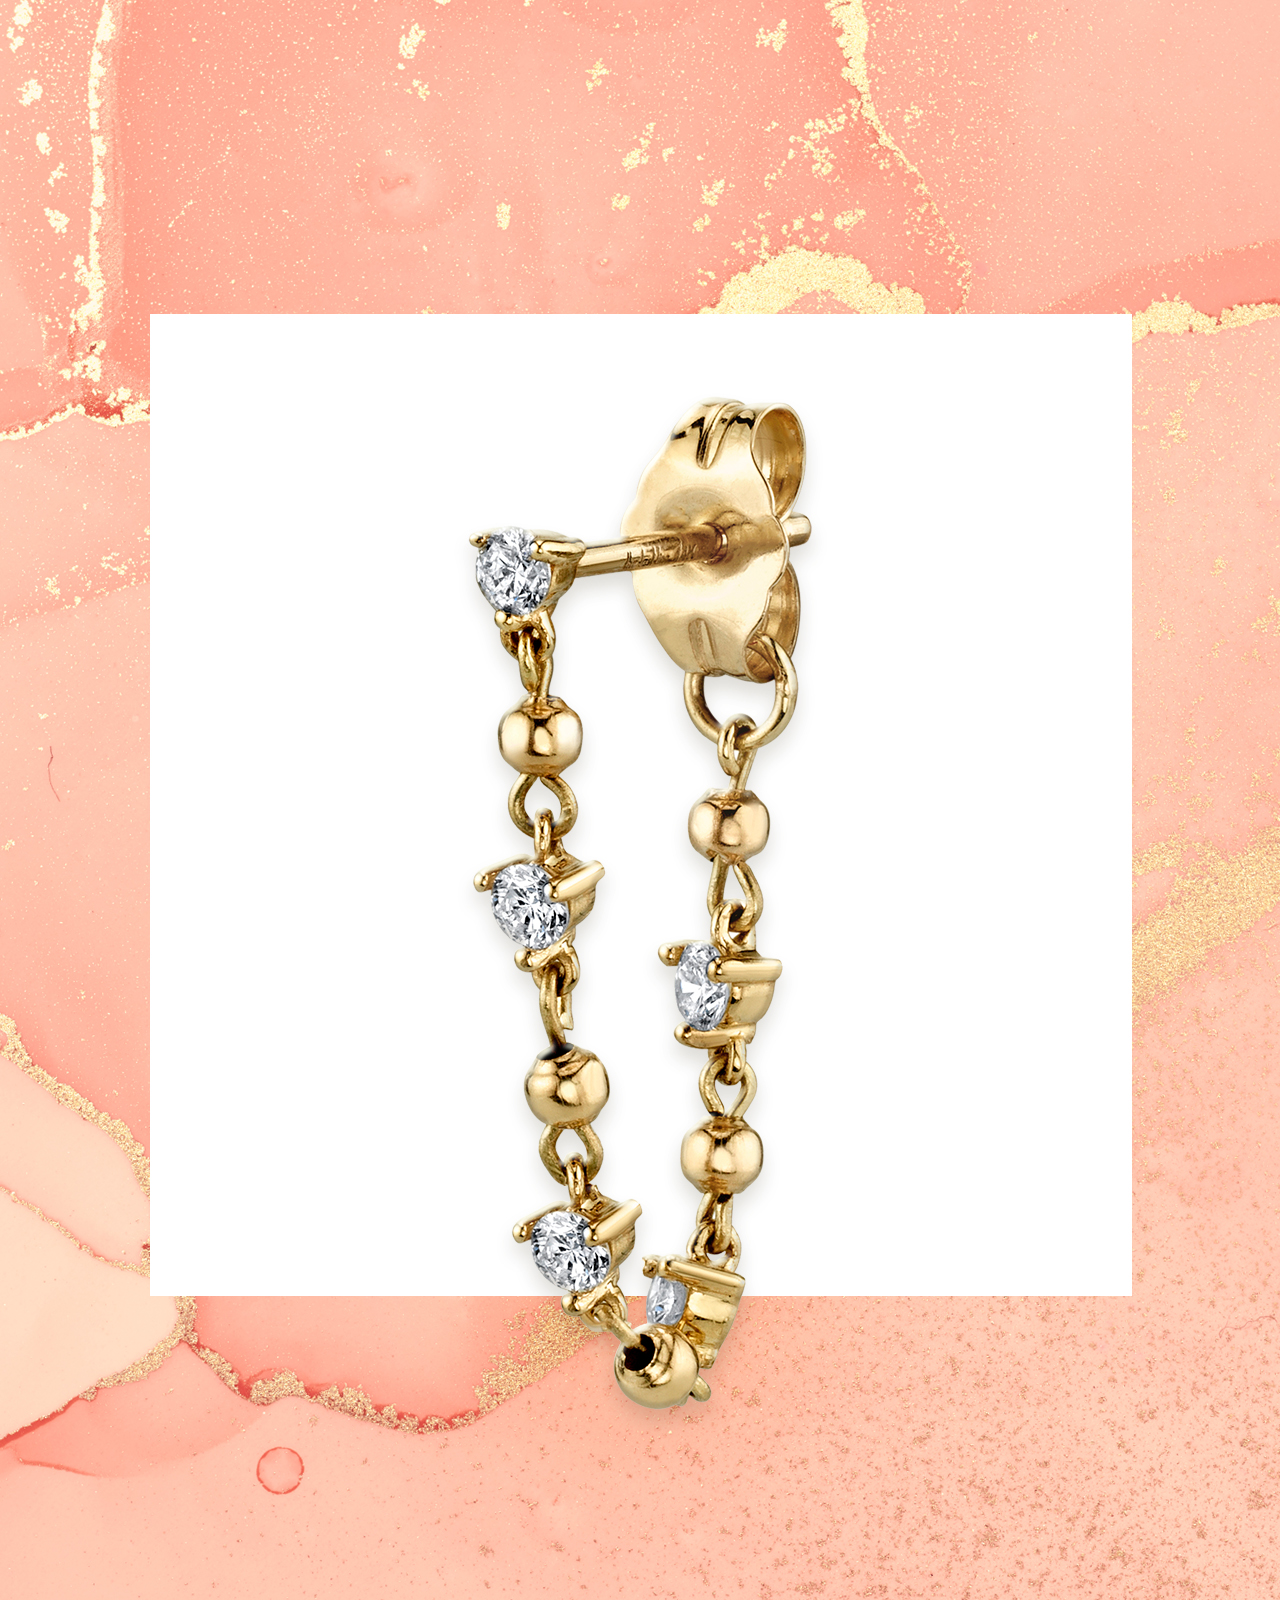 Round cut diamonds set within a yellow gold statement earring from Last Line